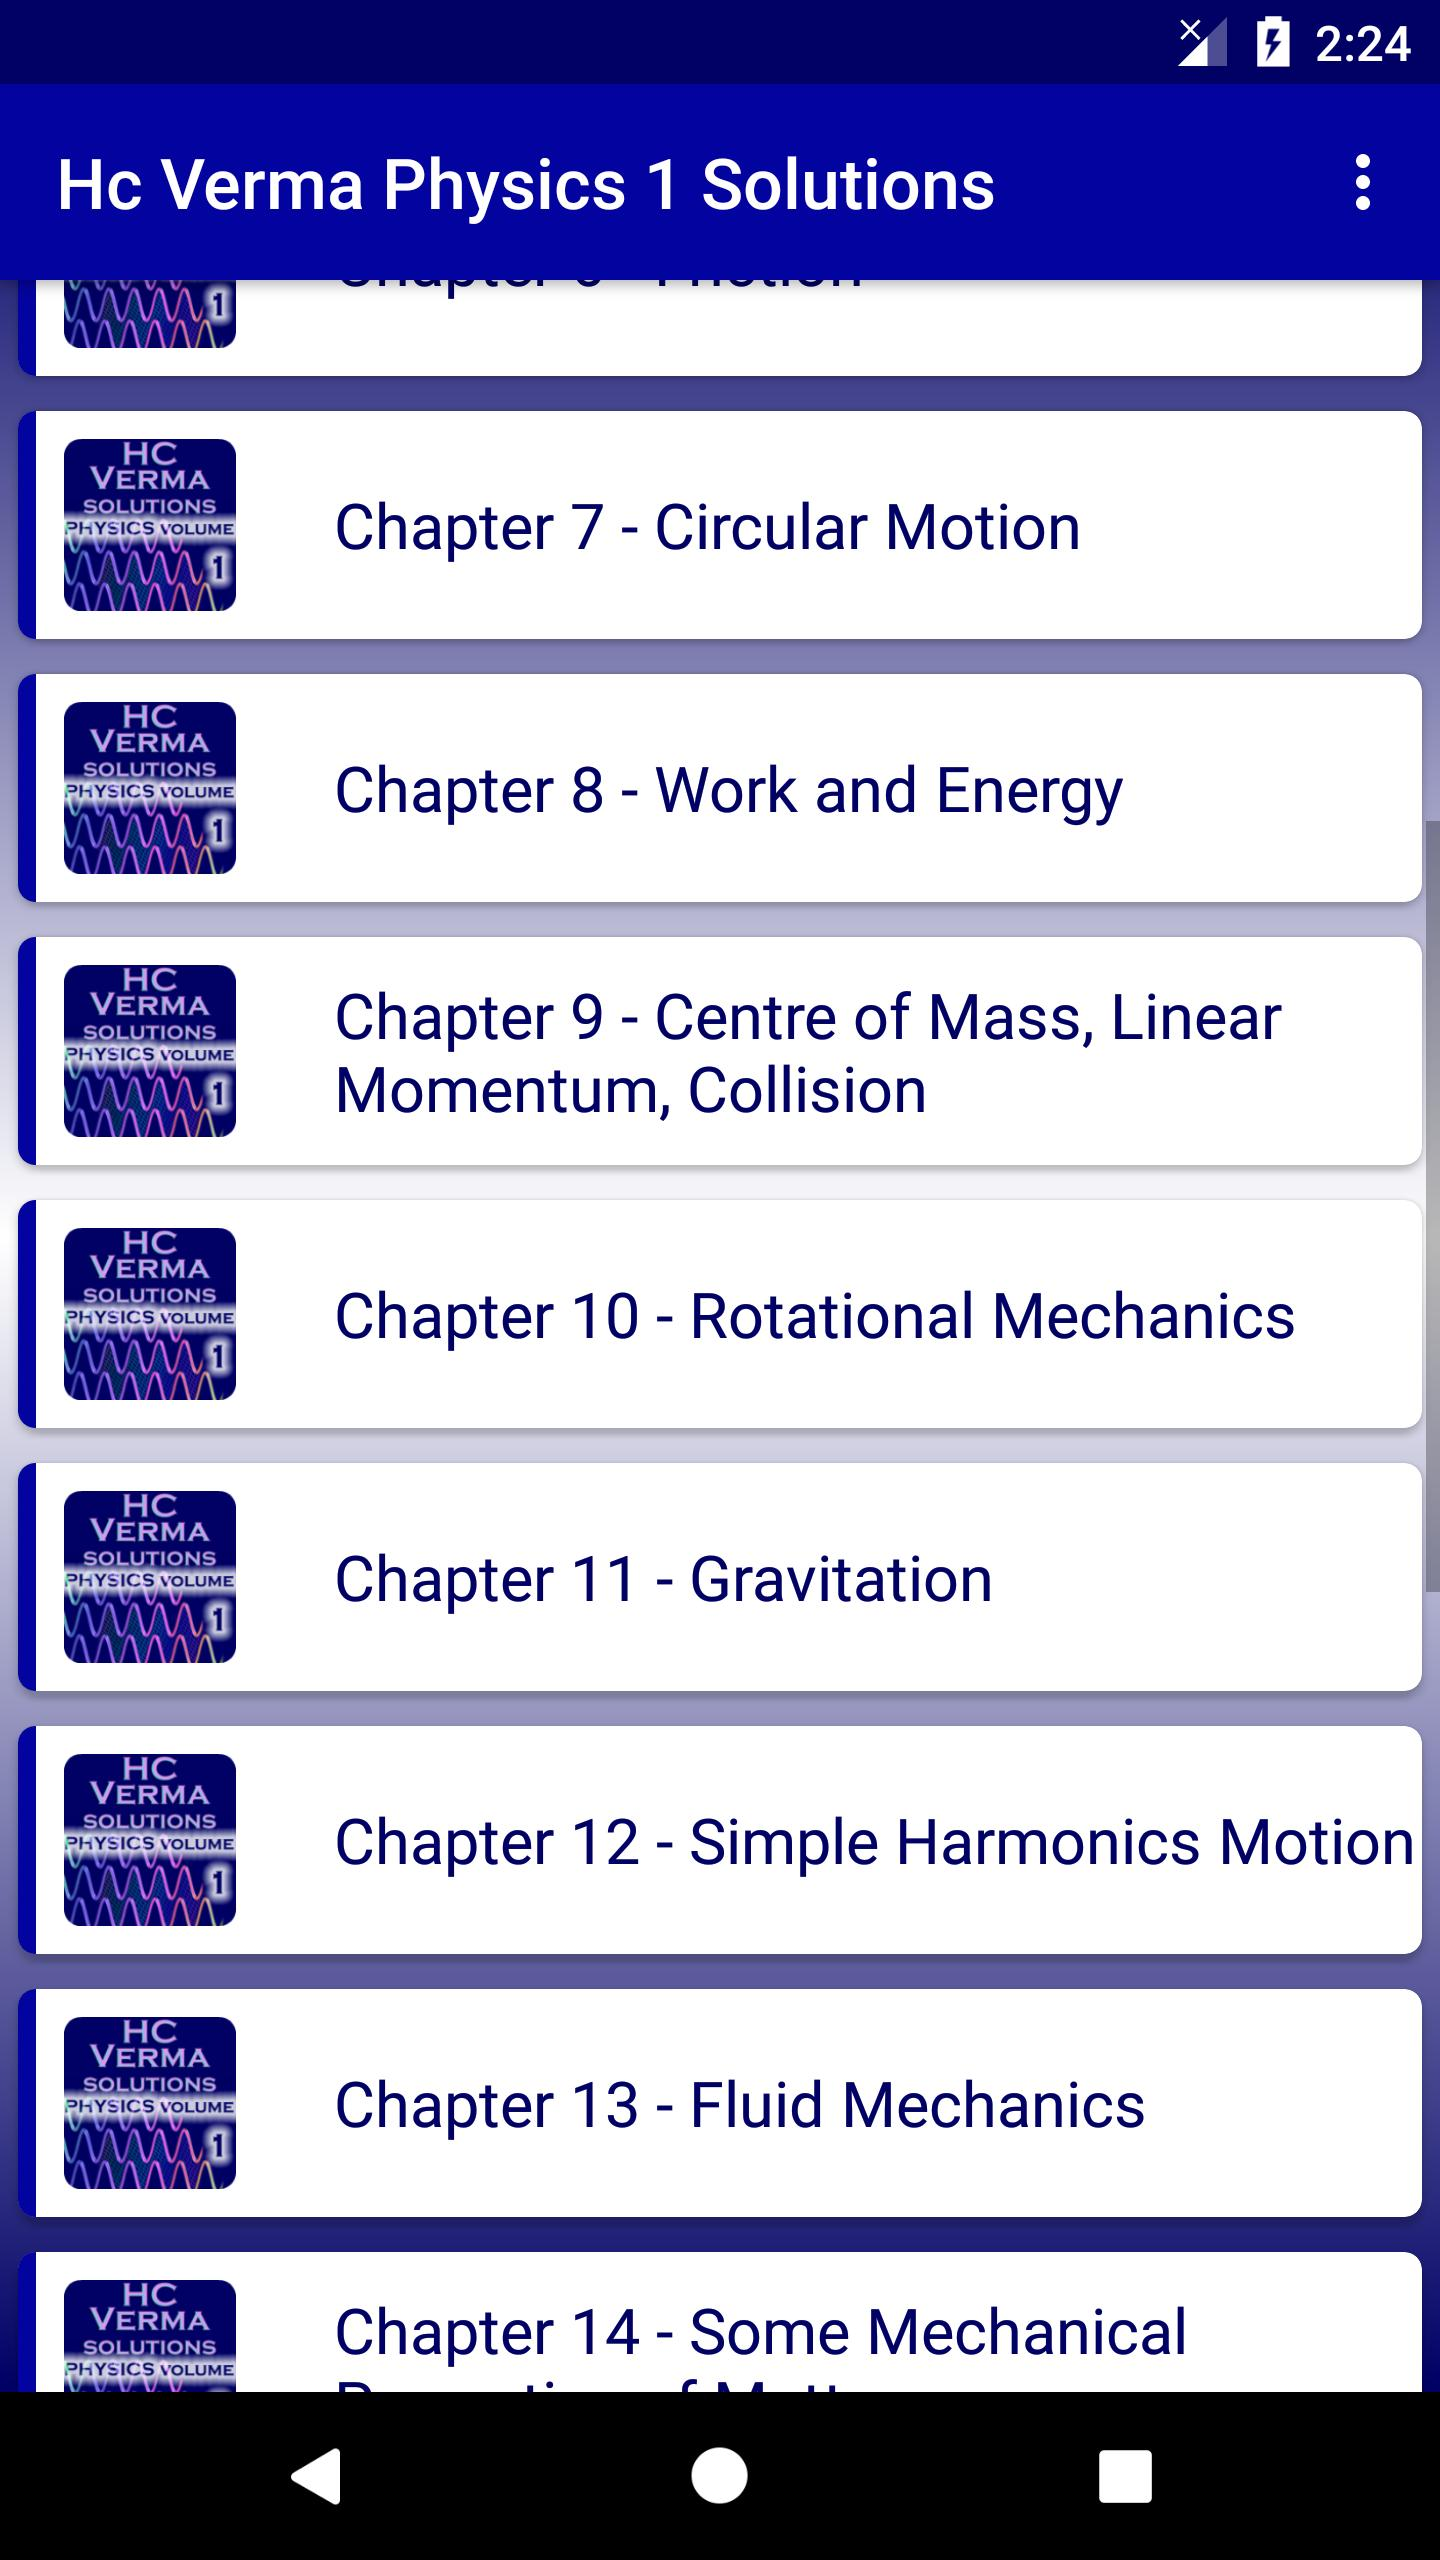 HC Verma - Concepts of Physics Part 1 Solutions for Android - APK